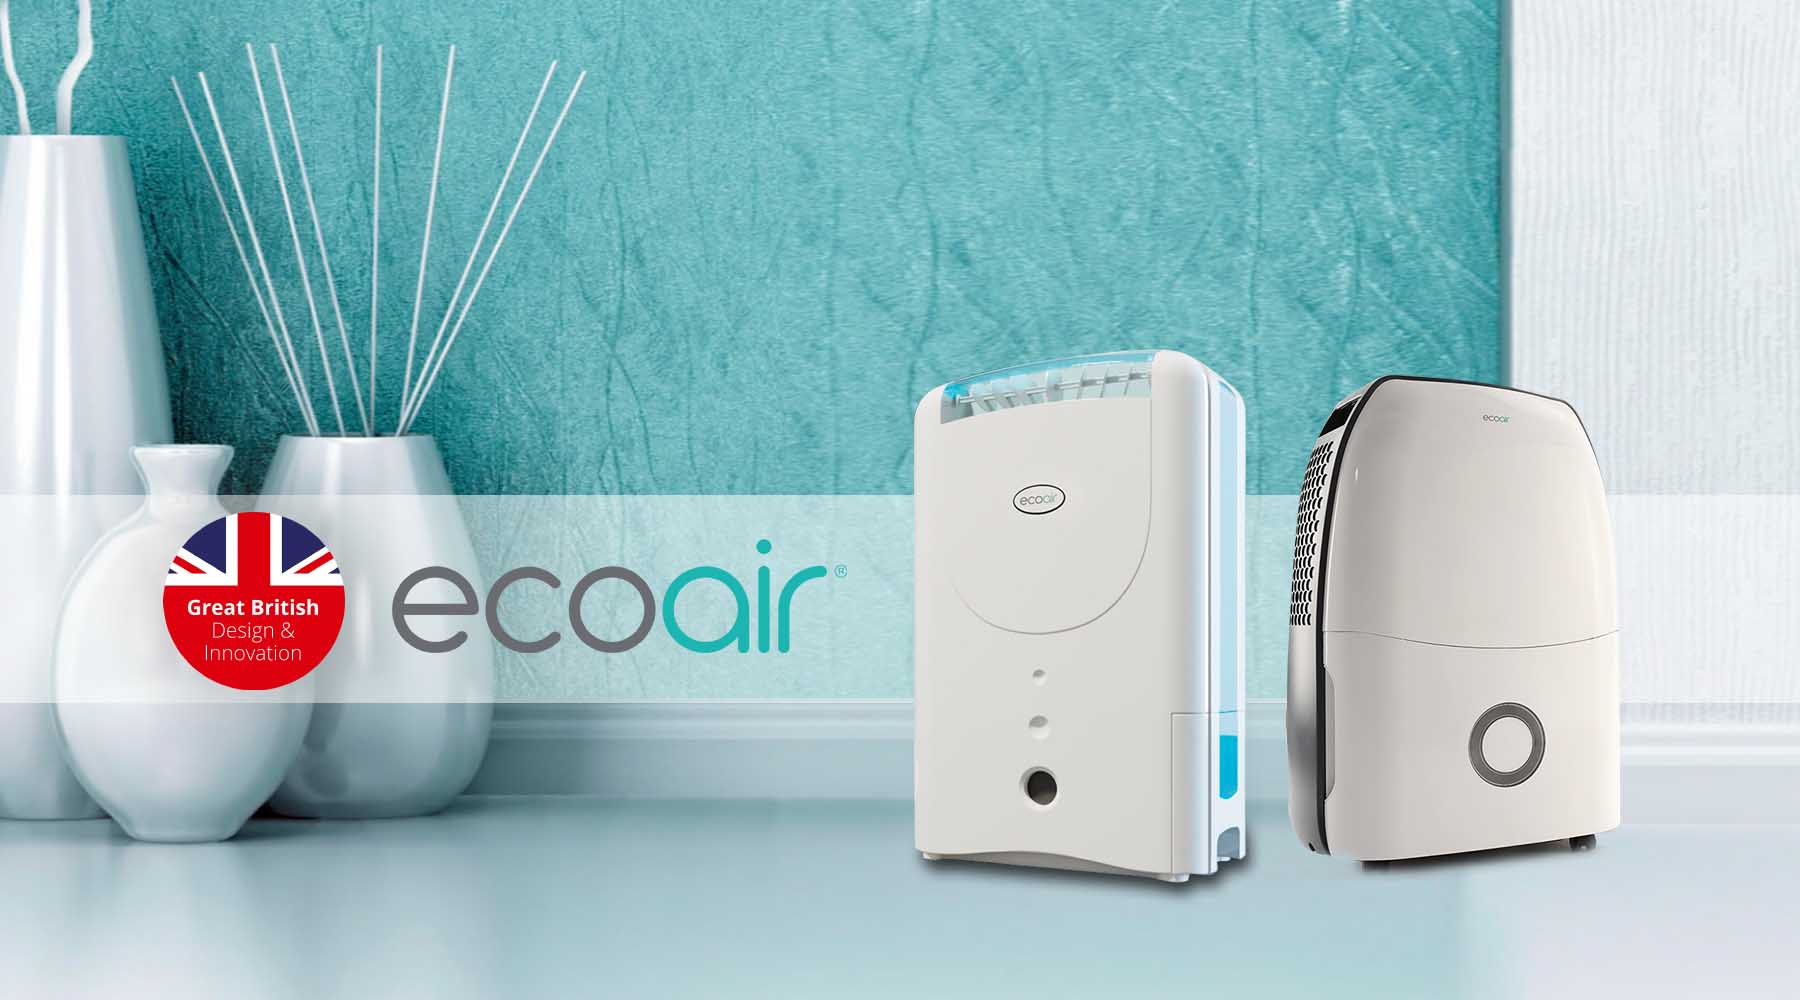 Which UK names EcoAir - The Most Reliable Brand in Dehumidfiers